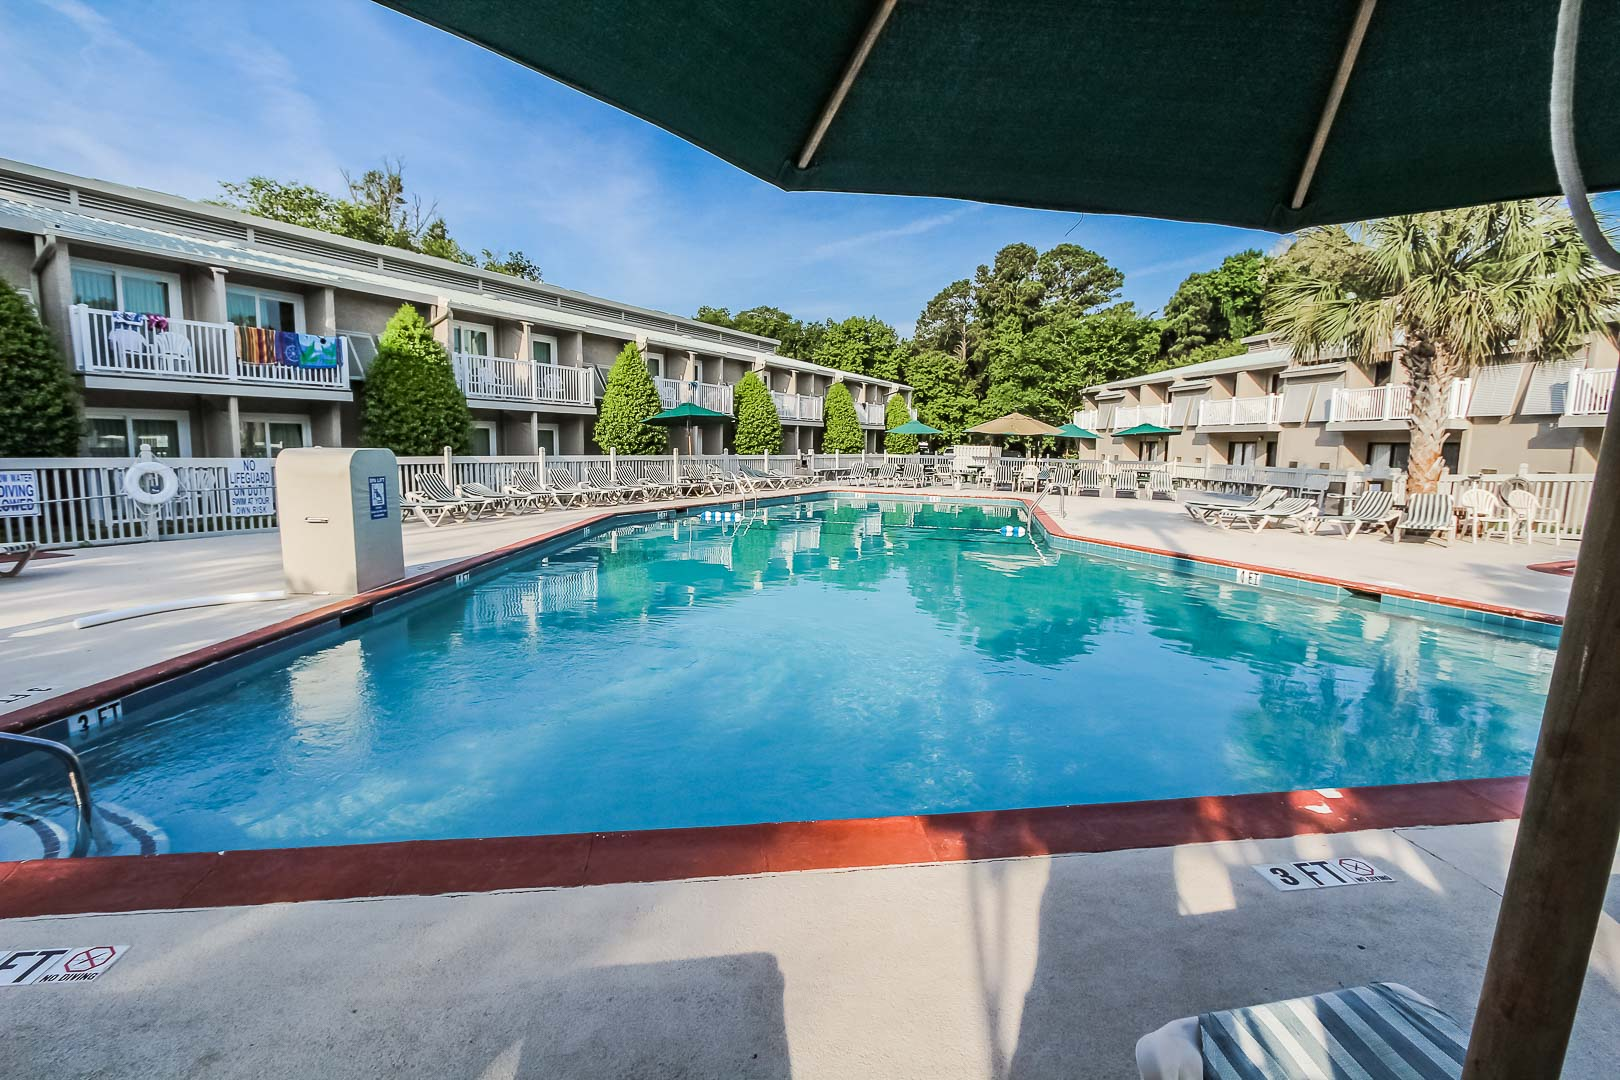 An expansive outdoor swimming pool at VRI's Players Club Resort in Hilton Head Island, South Carolina.